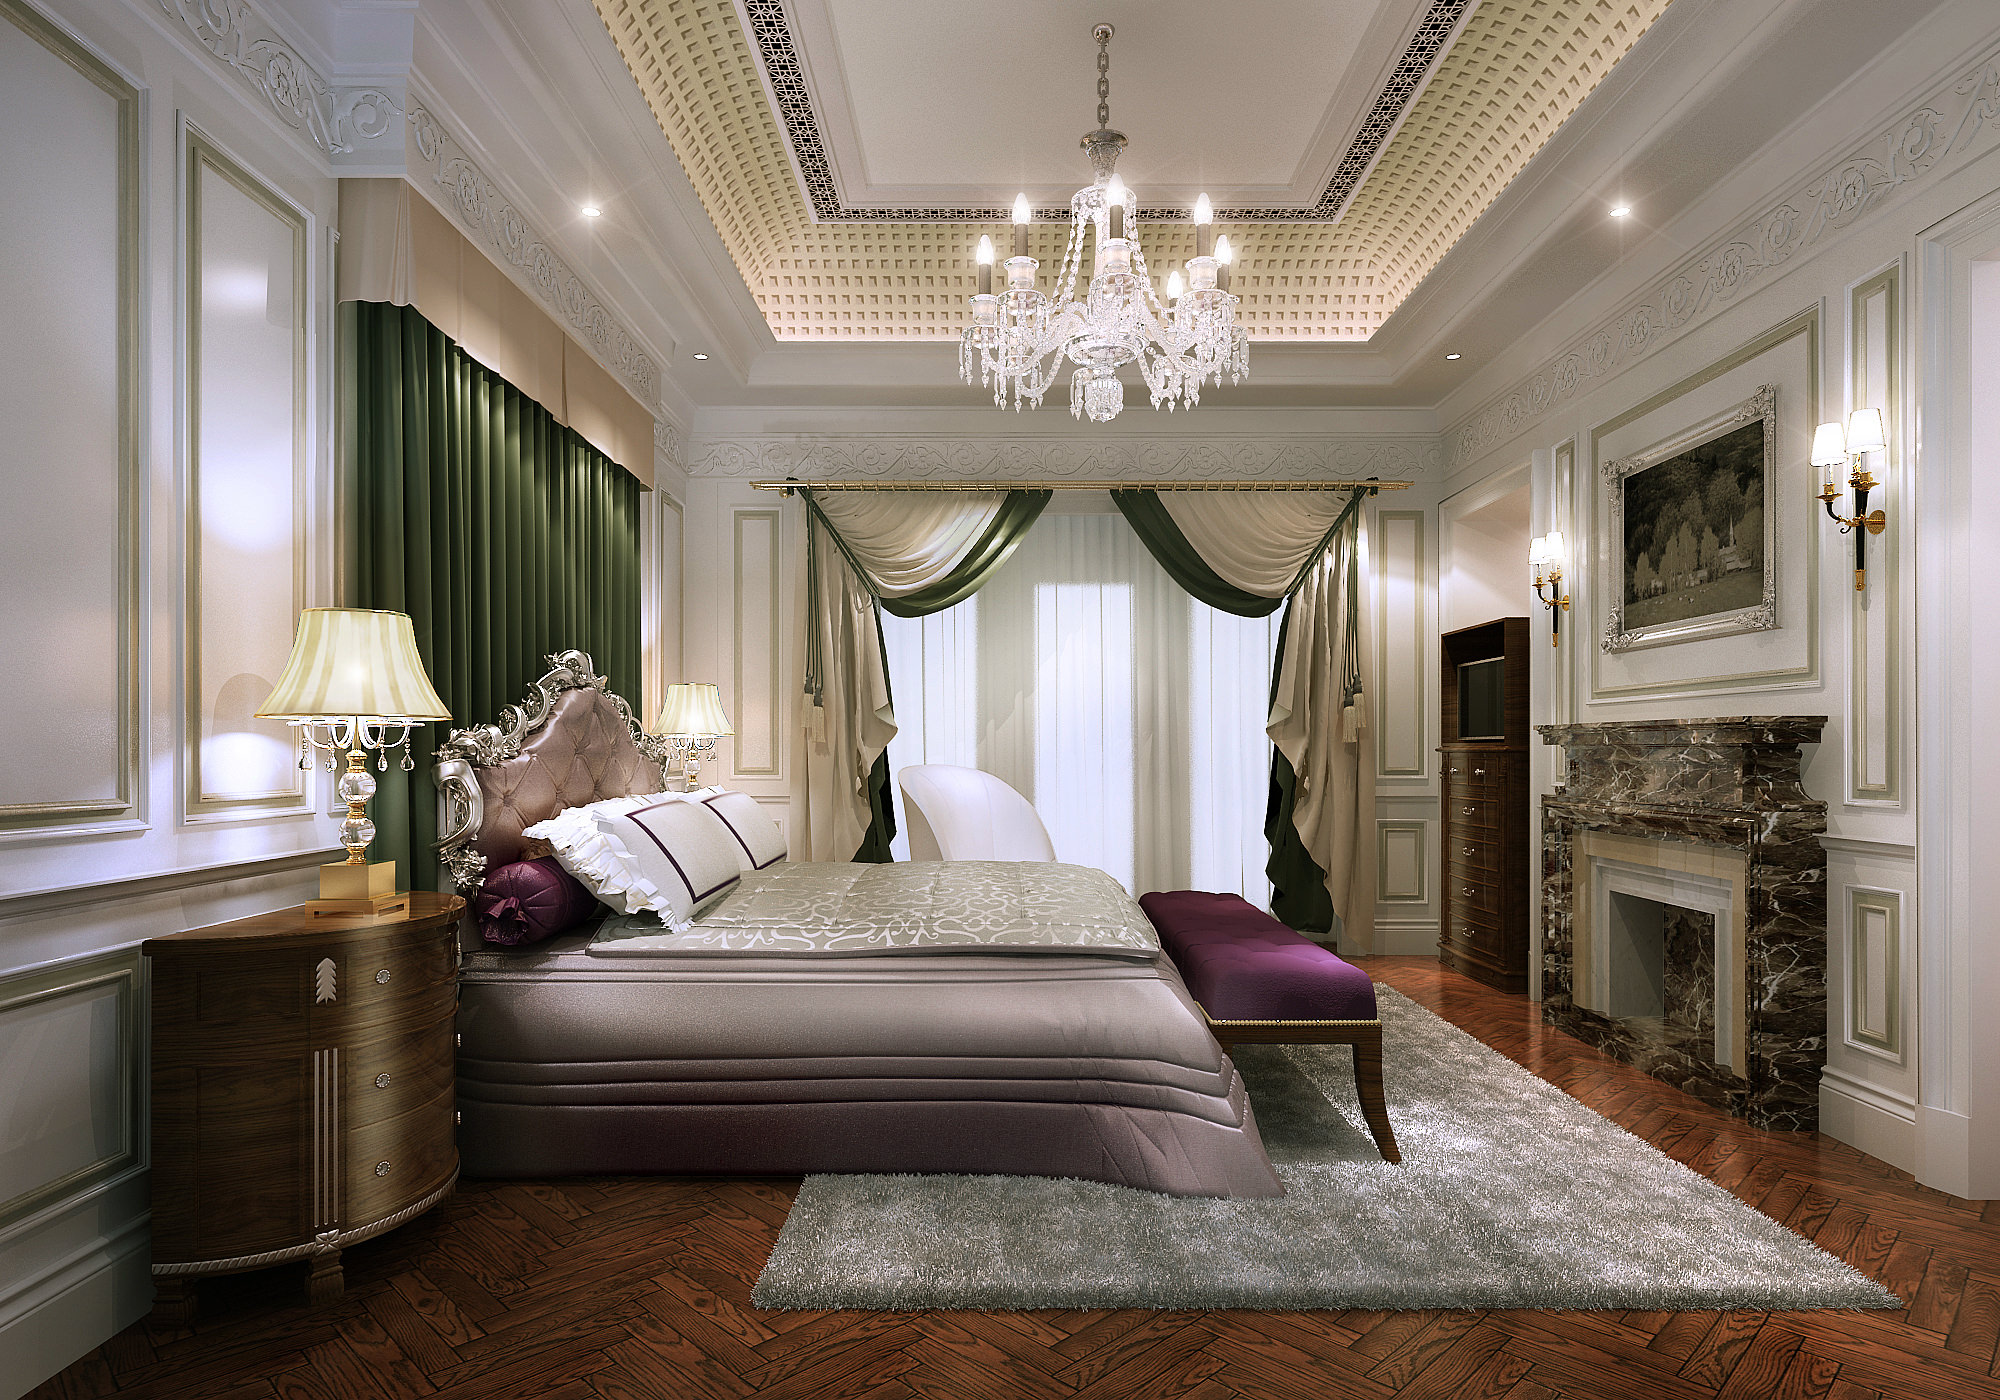 Elegant classic style bedroom 3d model max for Bedroom designs 3d model